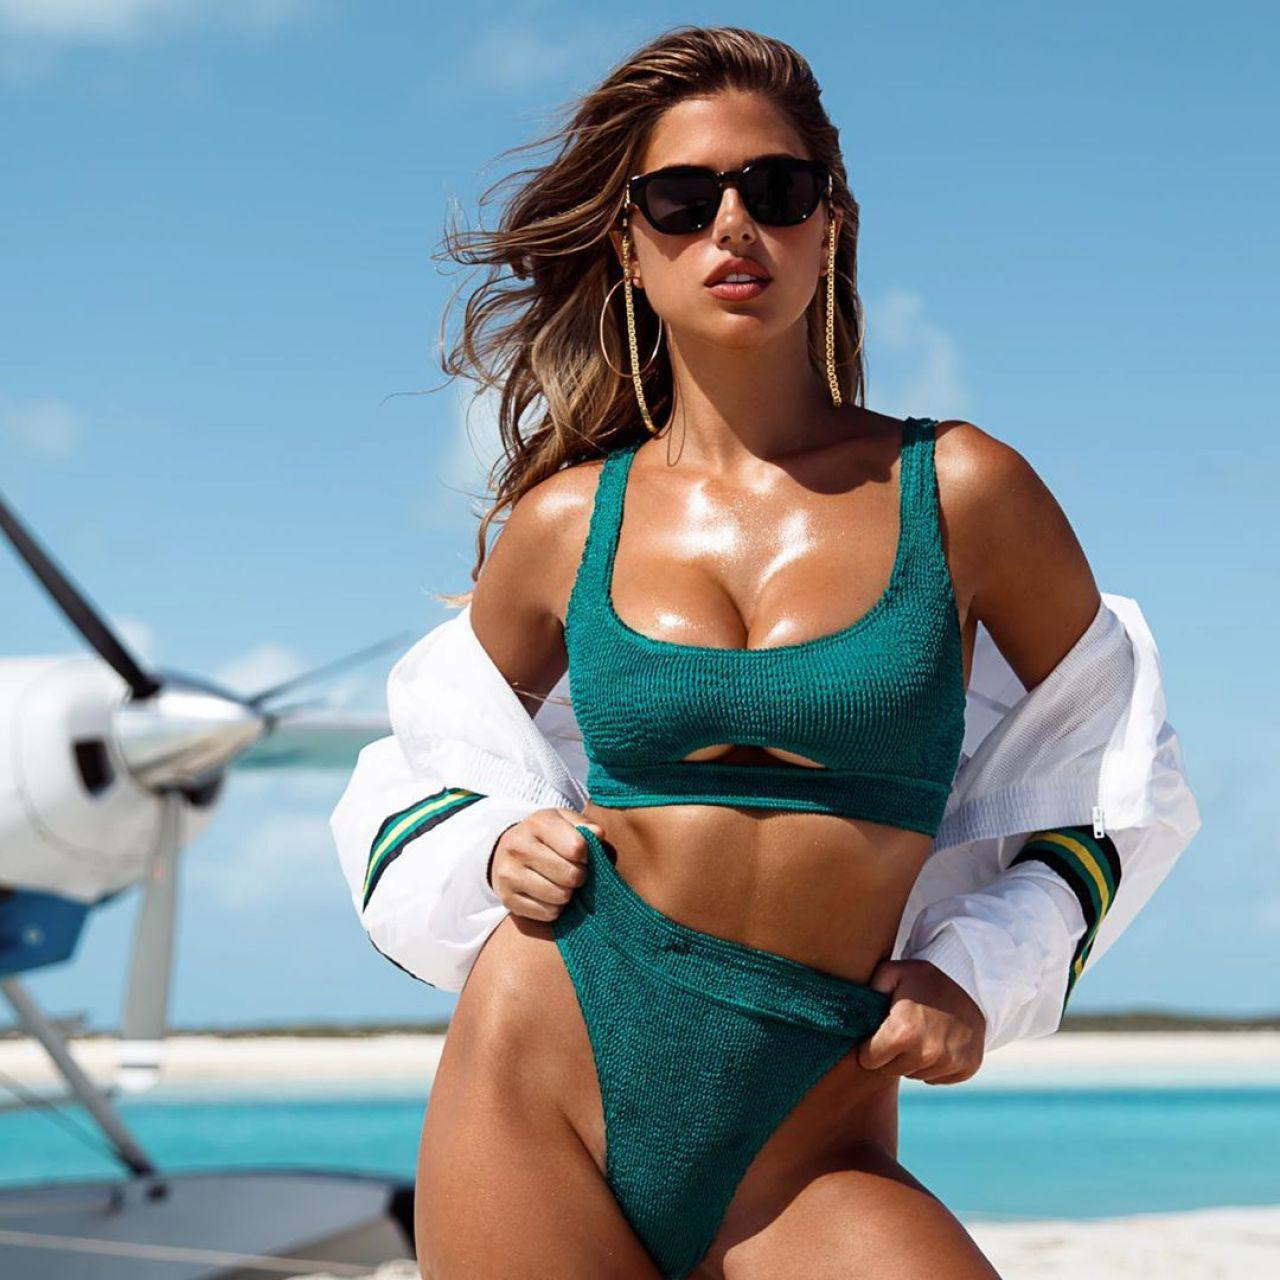 Kara Del Toro in Bikini Photoshoot